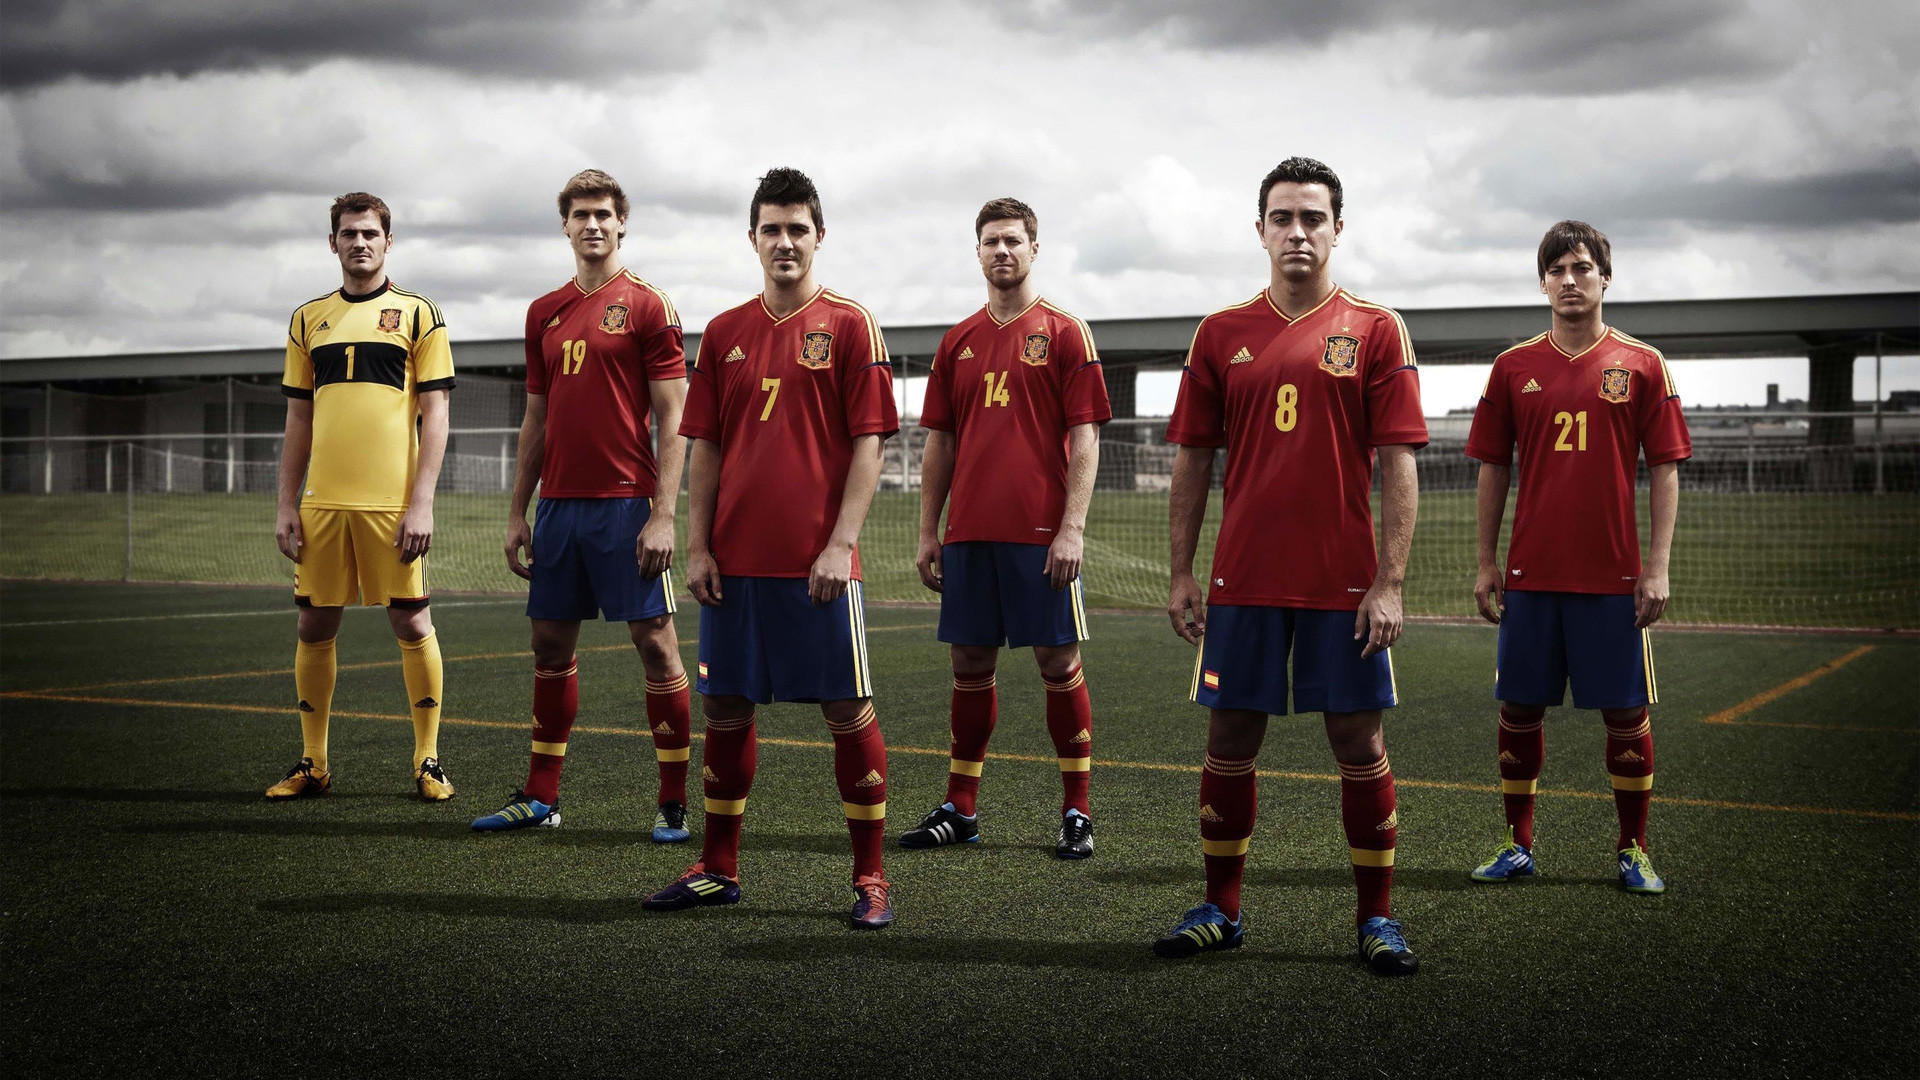 wallpapers teams sports football team spain hd vertical